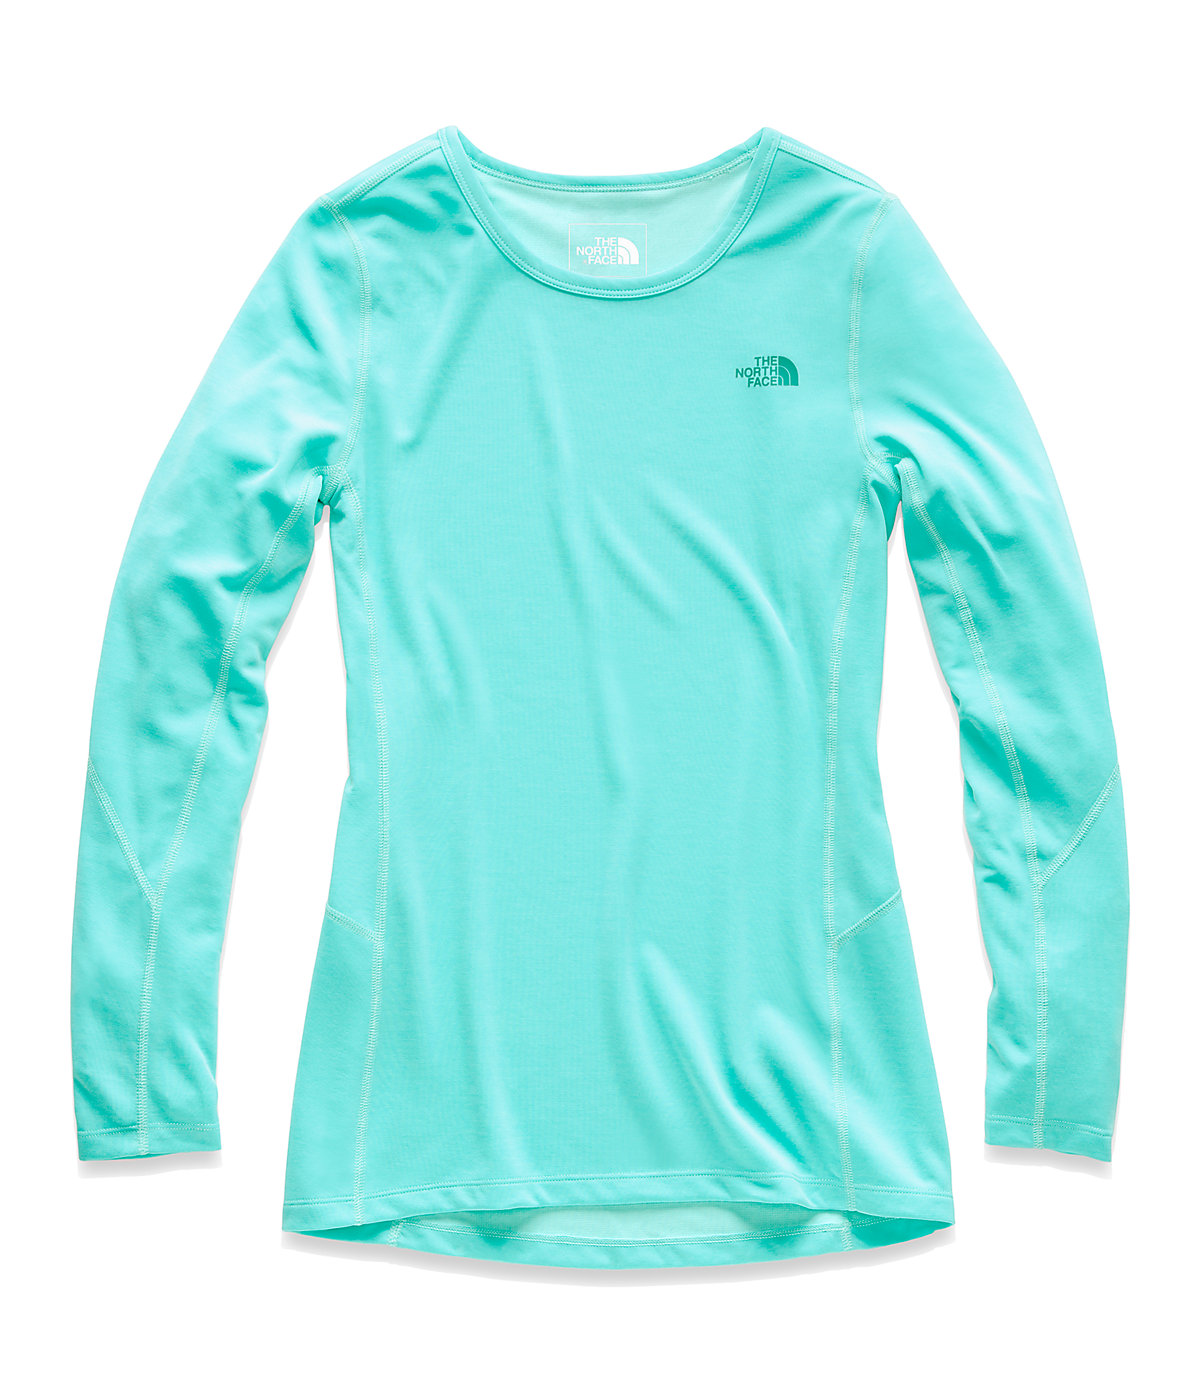 9142eeed61d Women's presta long-sleeve crew in 2019 | Products | The north face ...